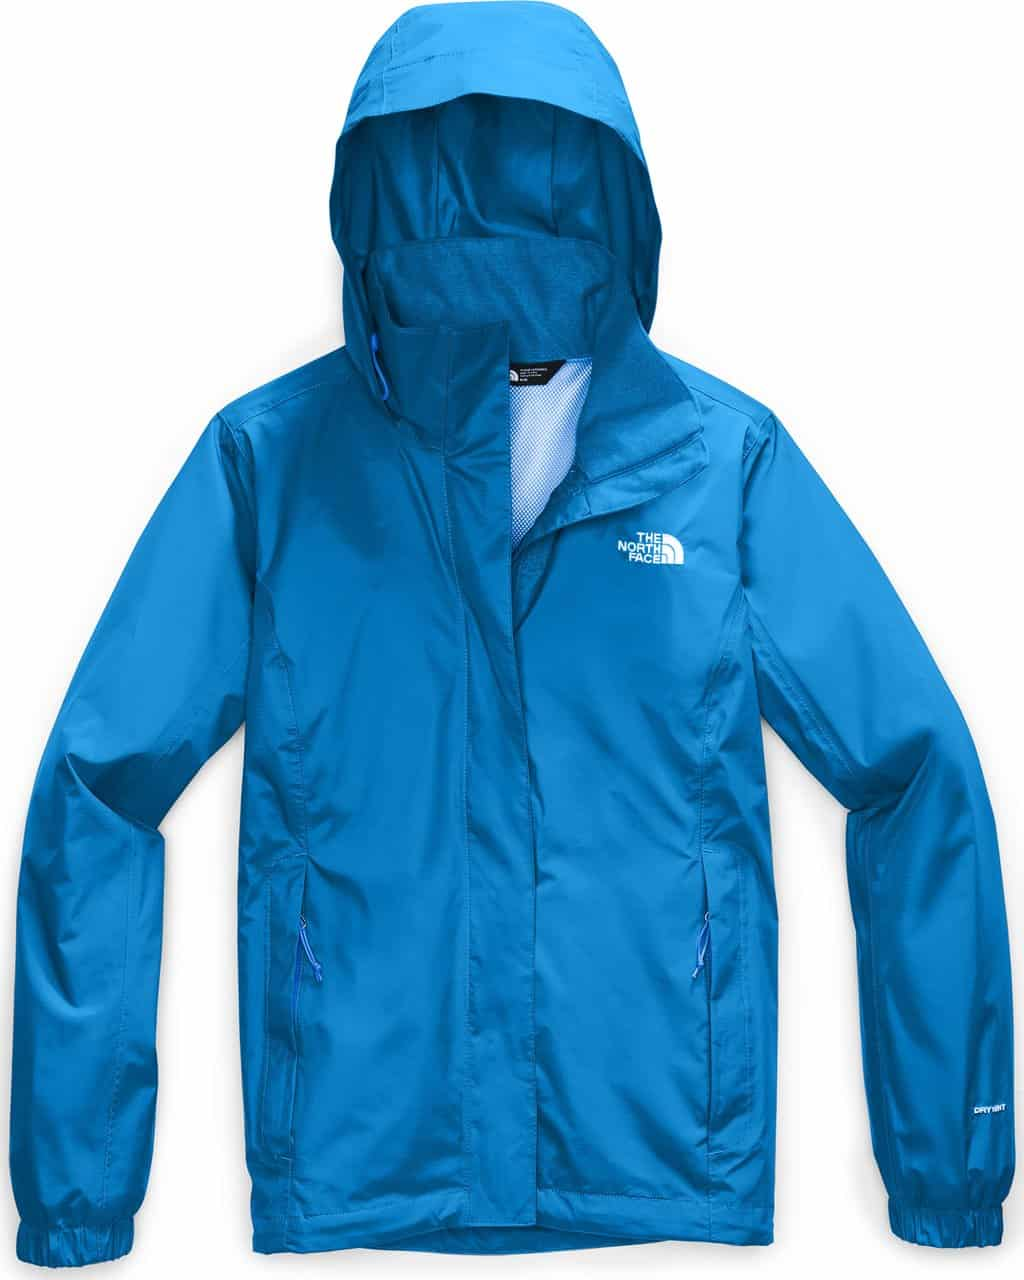 The North Face - Manteau Resolve 2 - Femme